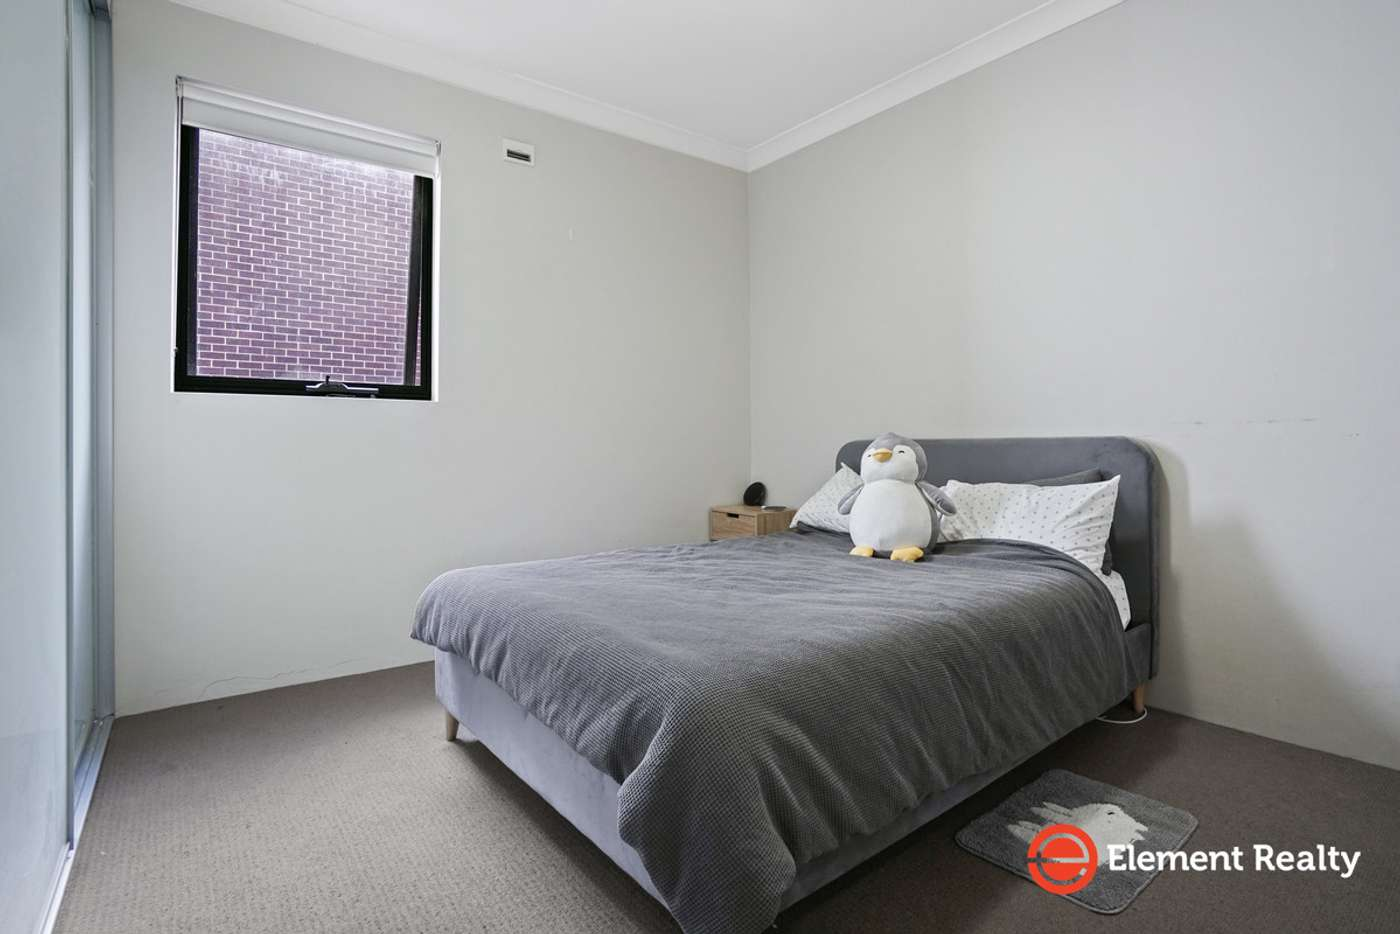 Fifth view of Homely apartment listing, 13/121-127 Railway Parade, Granville NSW 2142